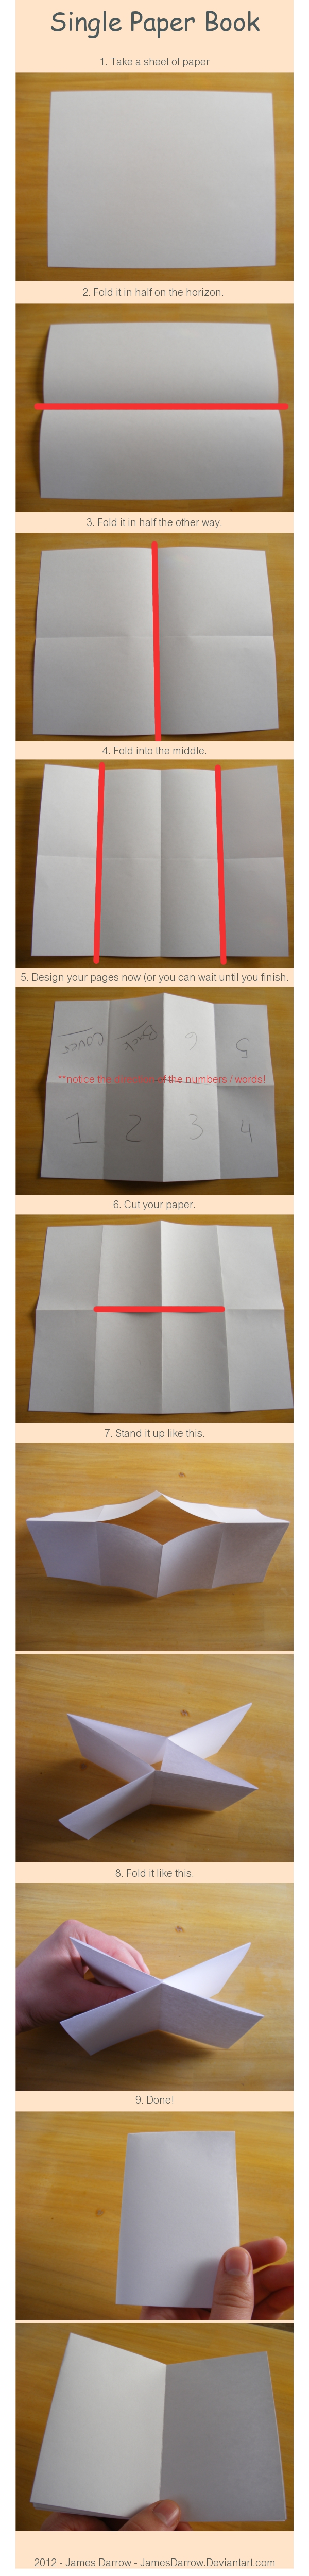 How To Make A Foldable Mini Book From One Sheet Of Paper